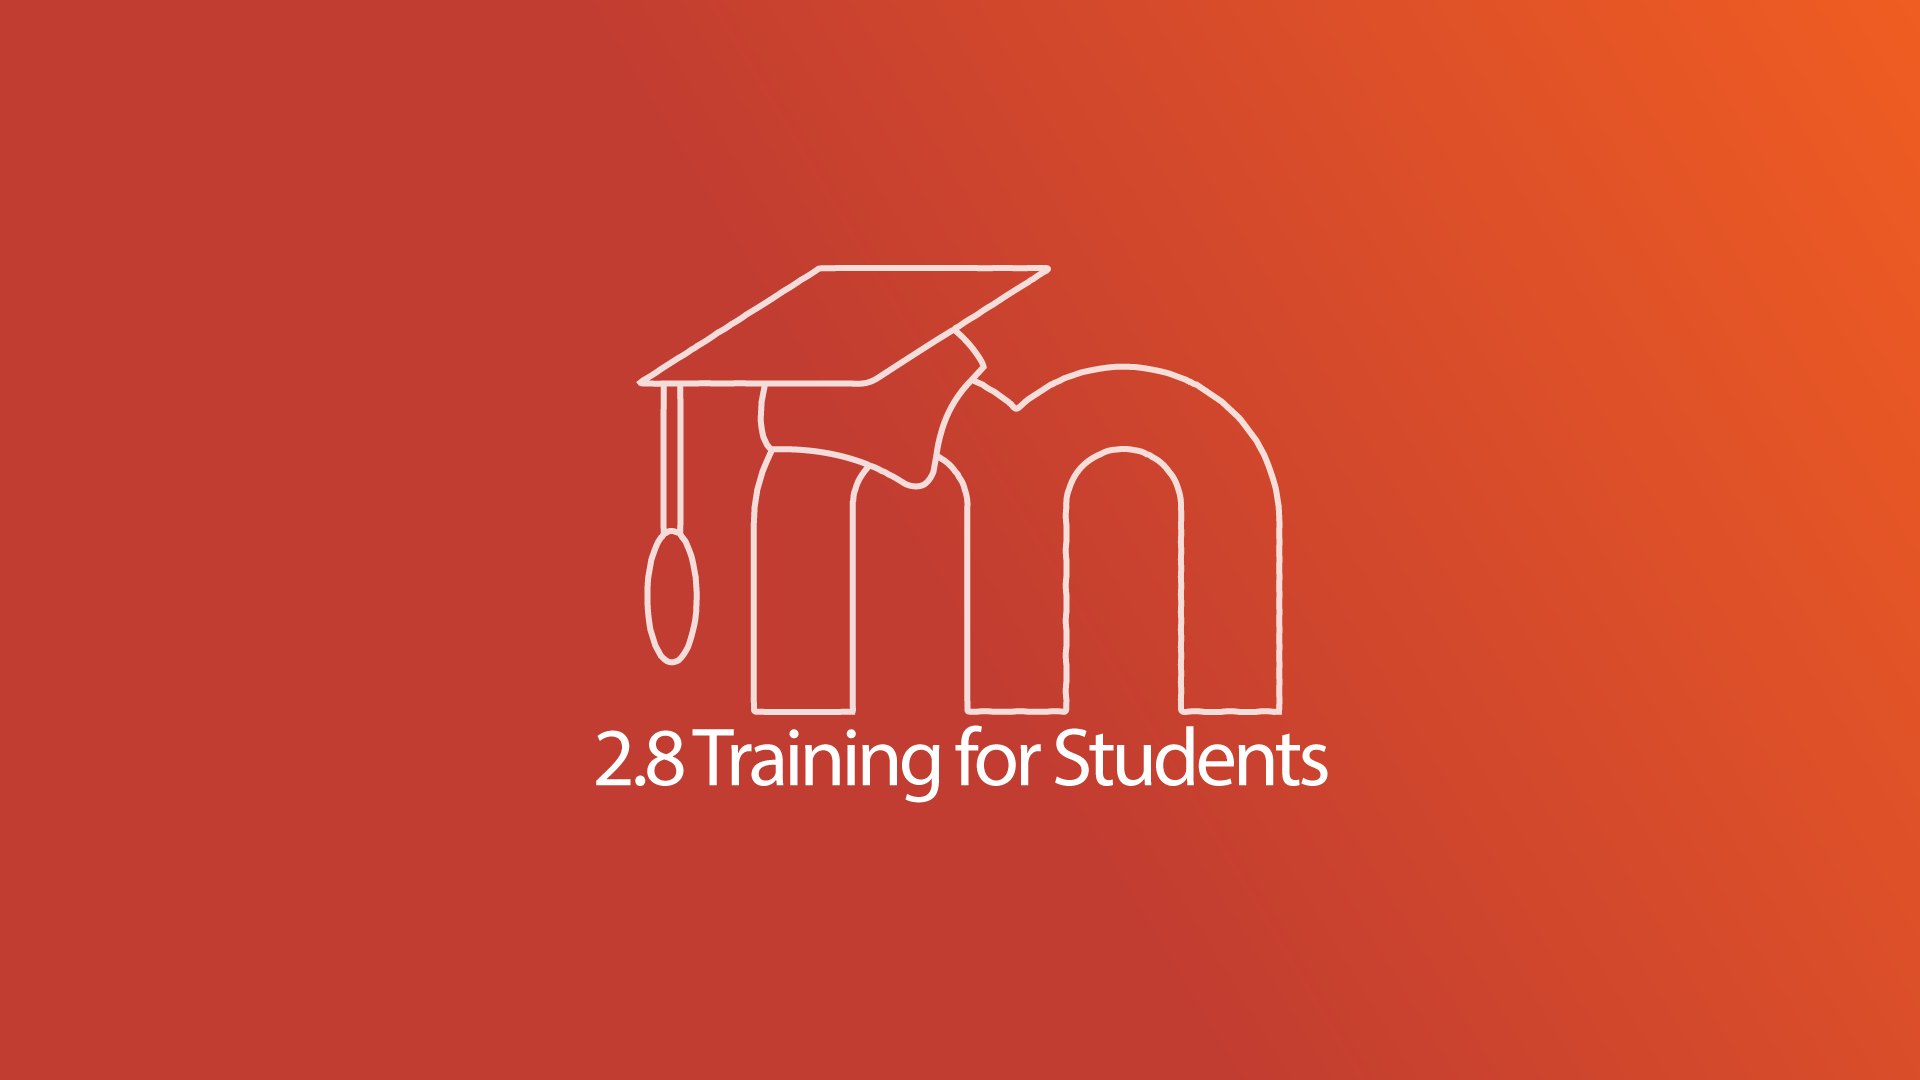 Moodle 2.8 Training for Students